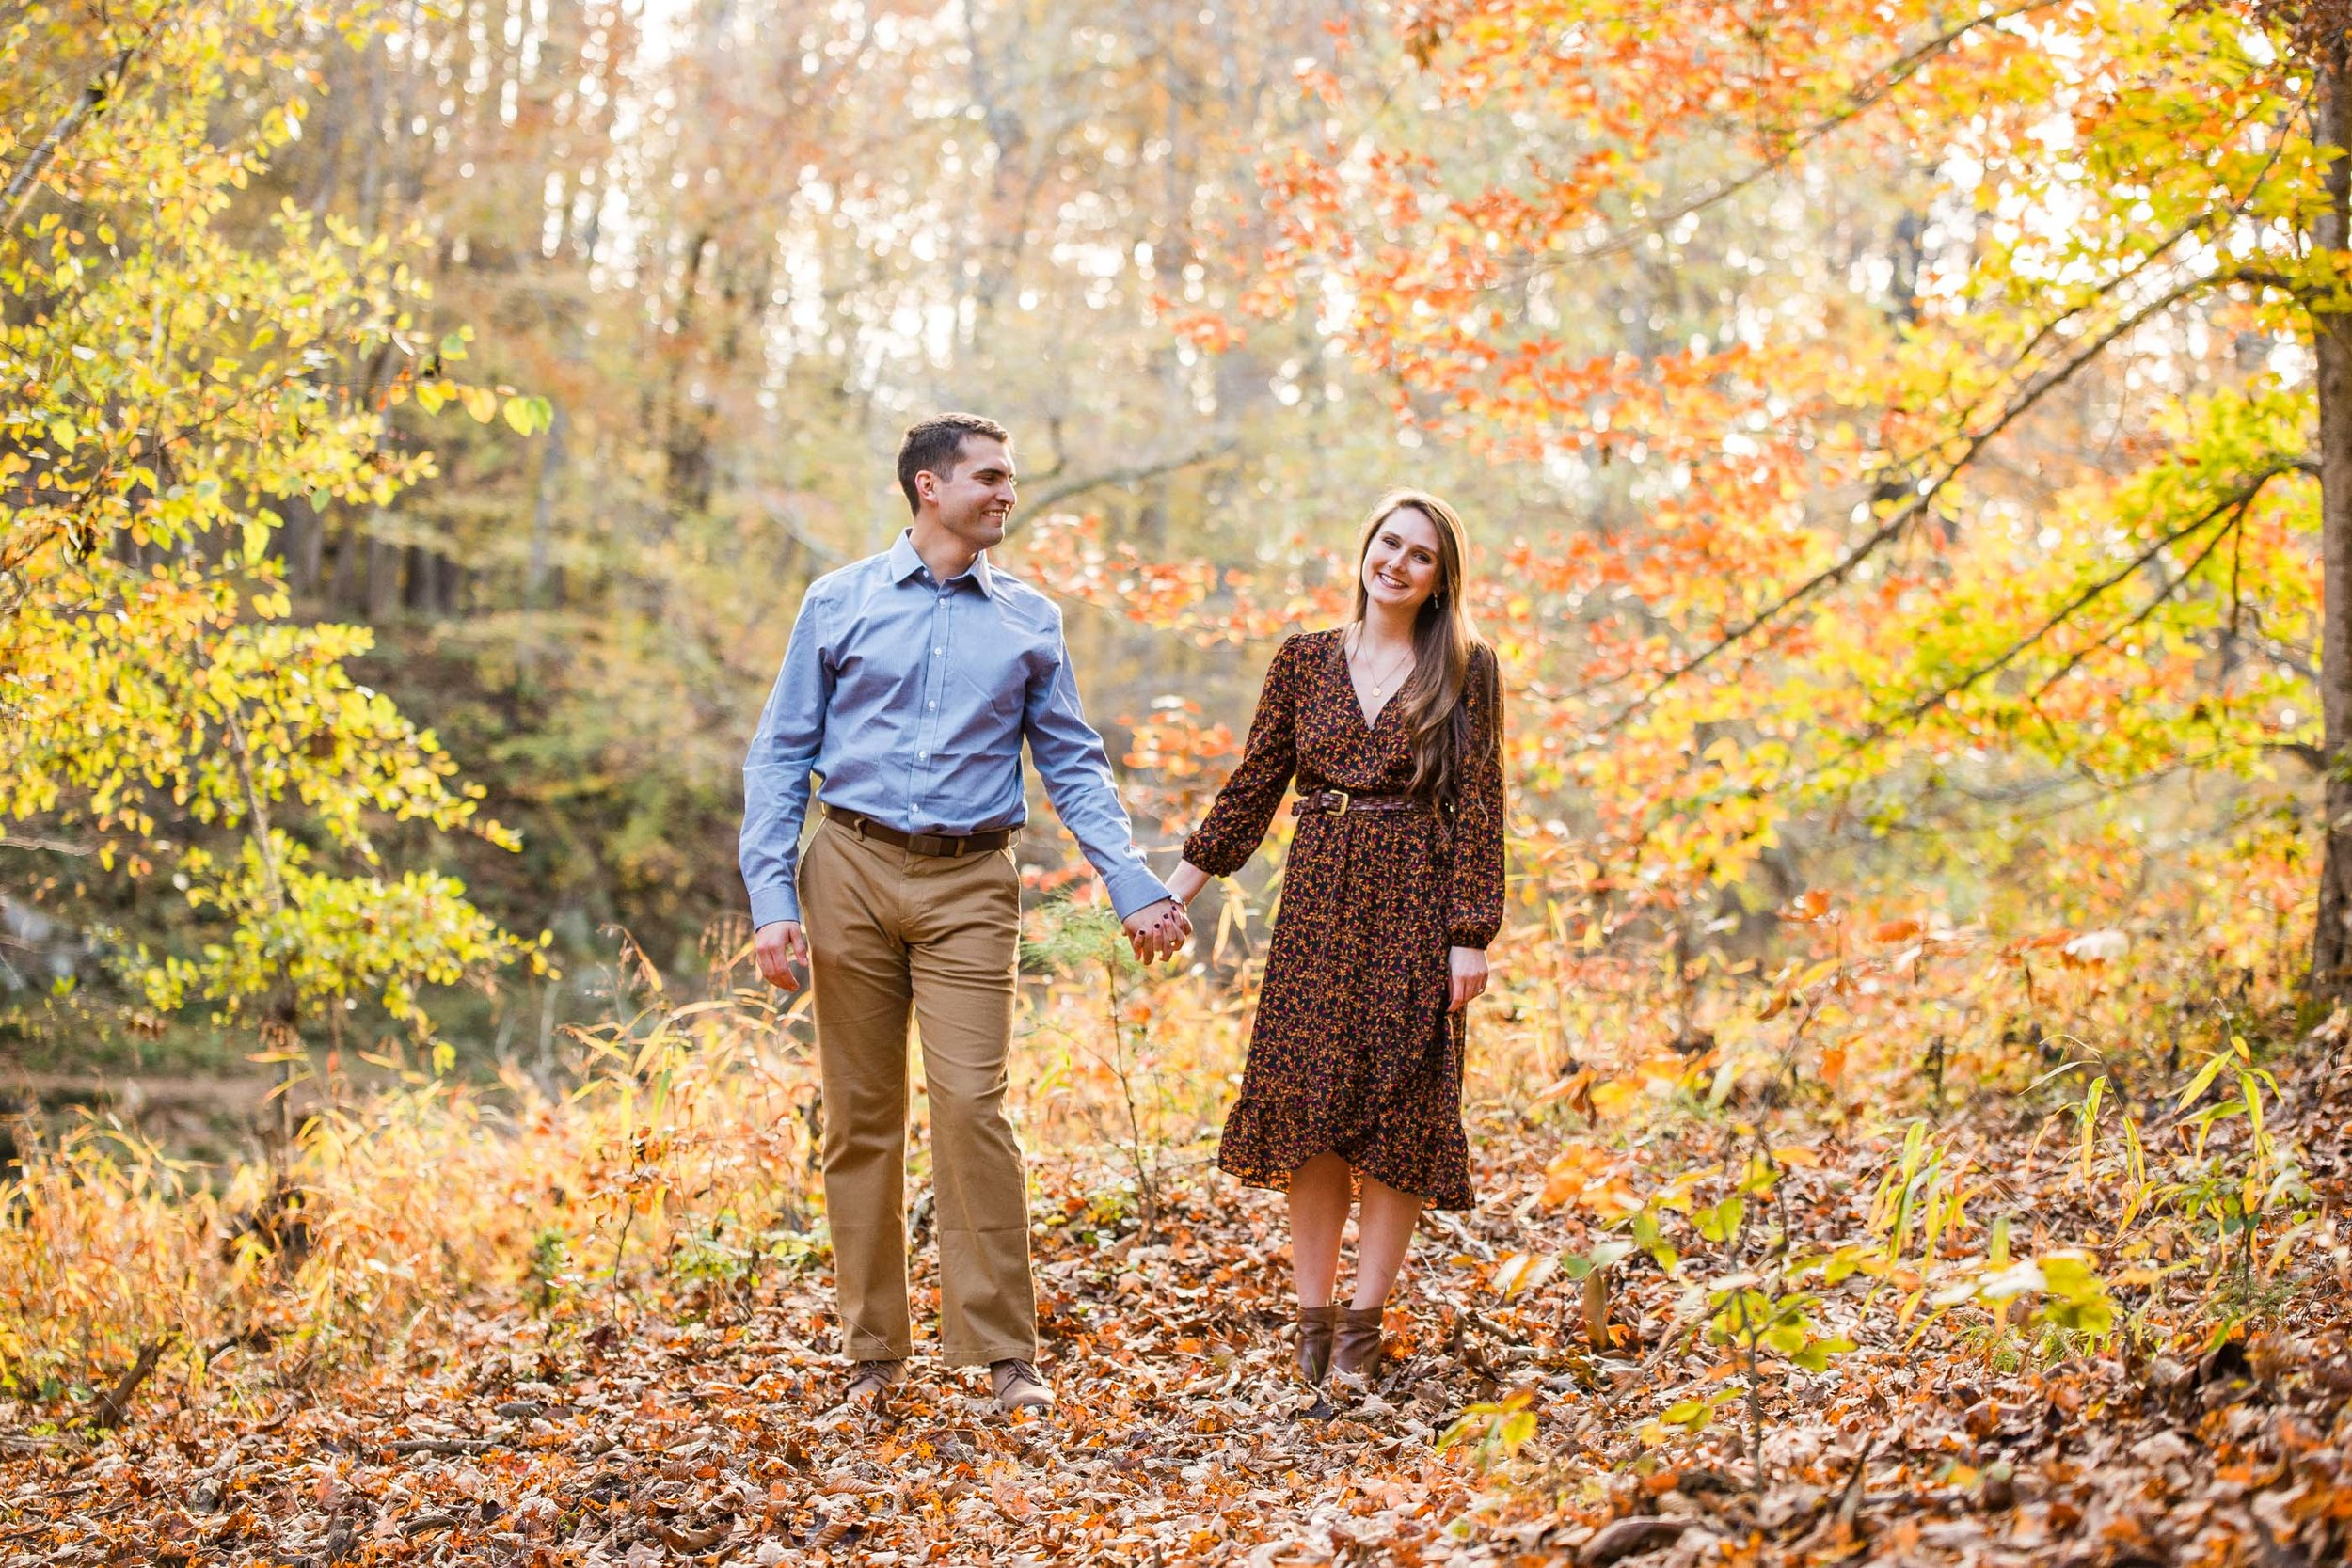 2018_11_07_michelle_francisco_engagement_eno_river-8598.jpg